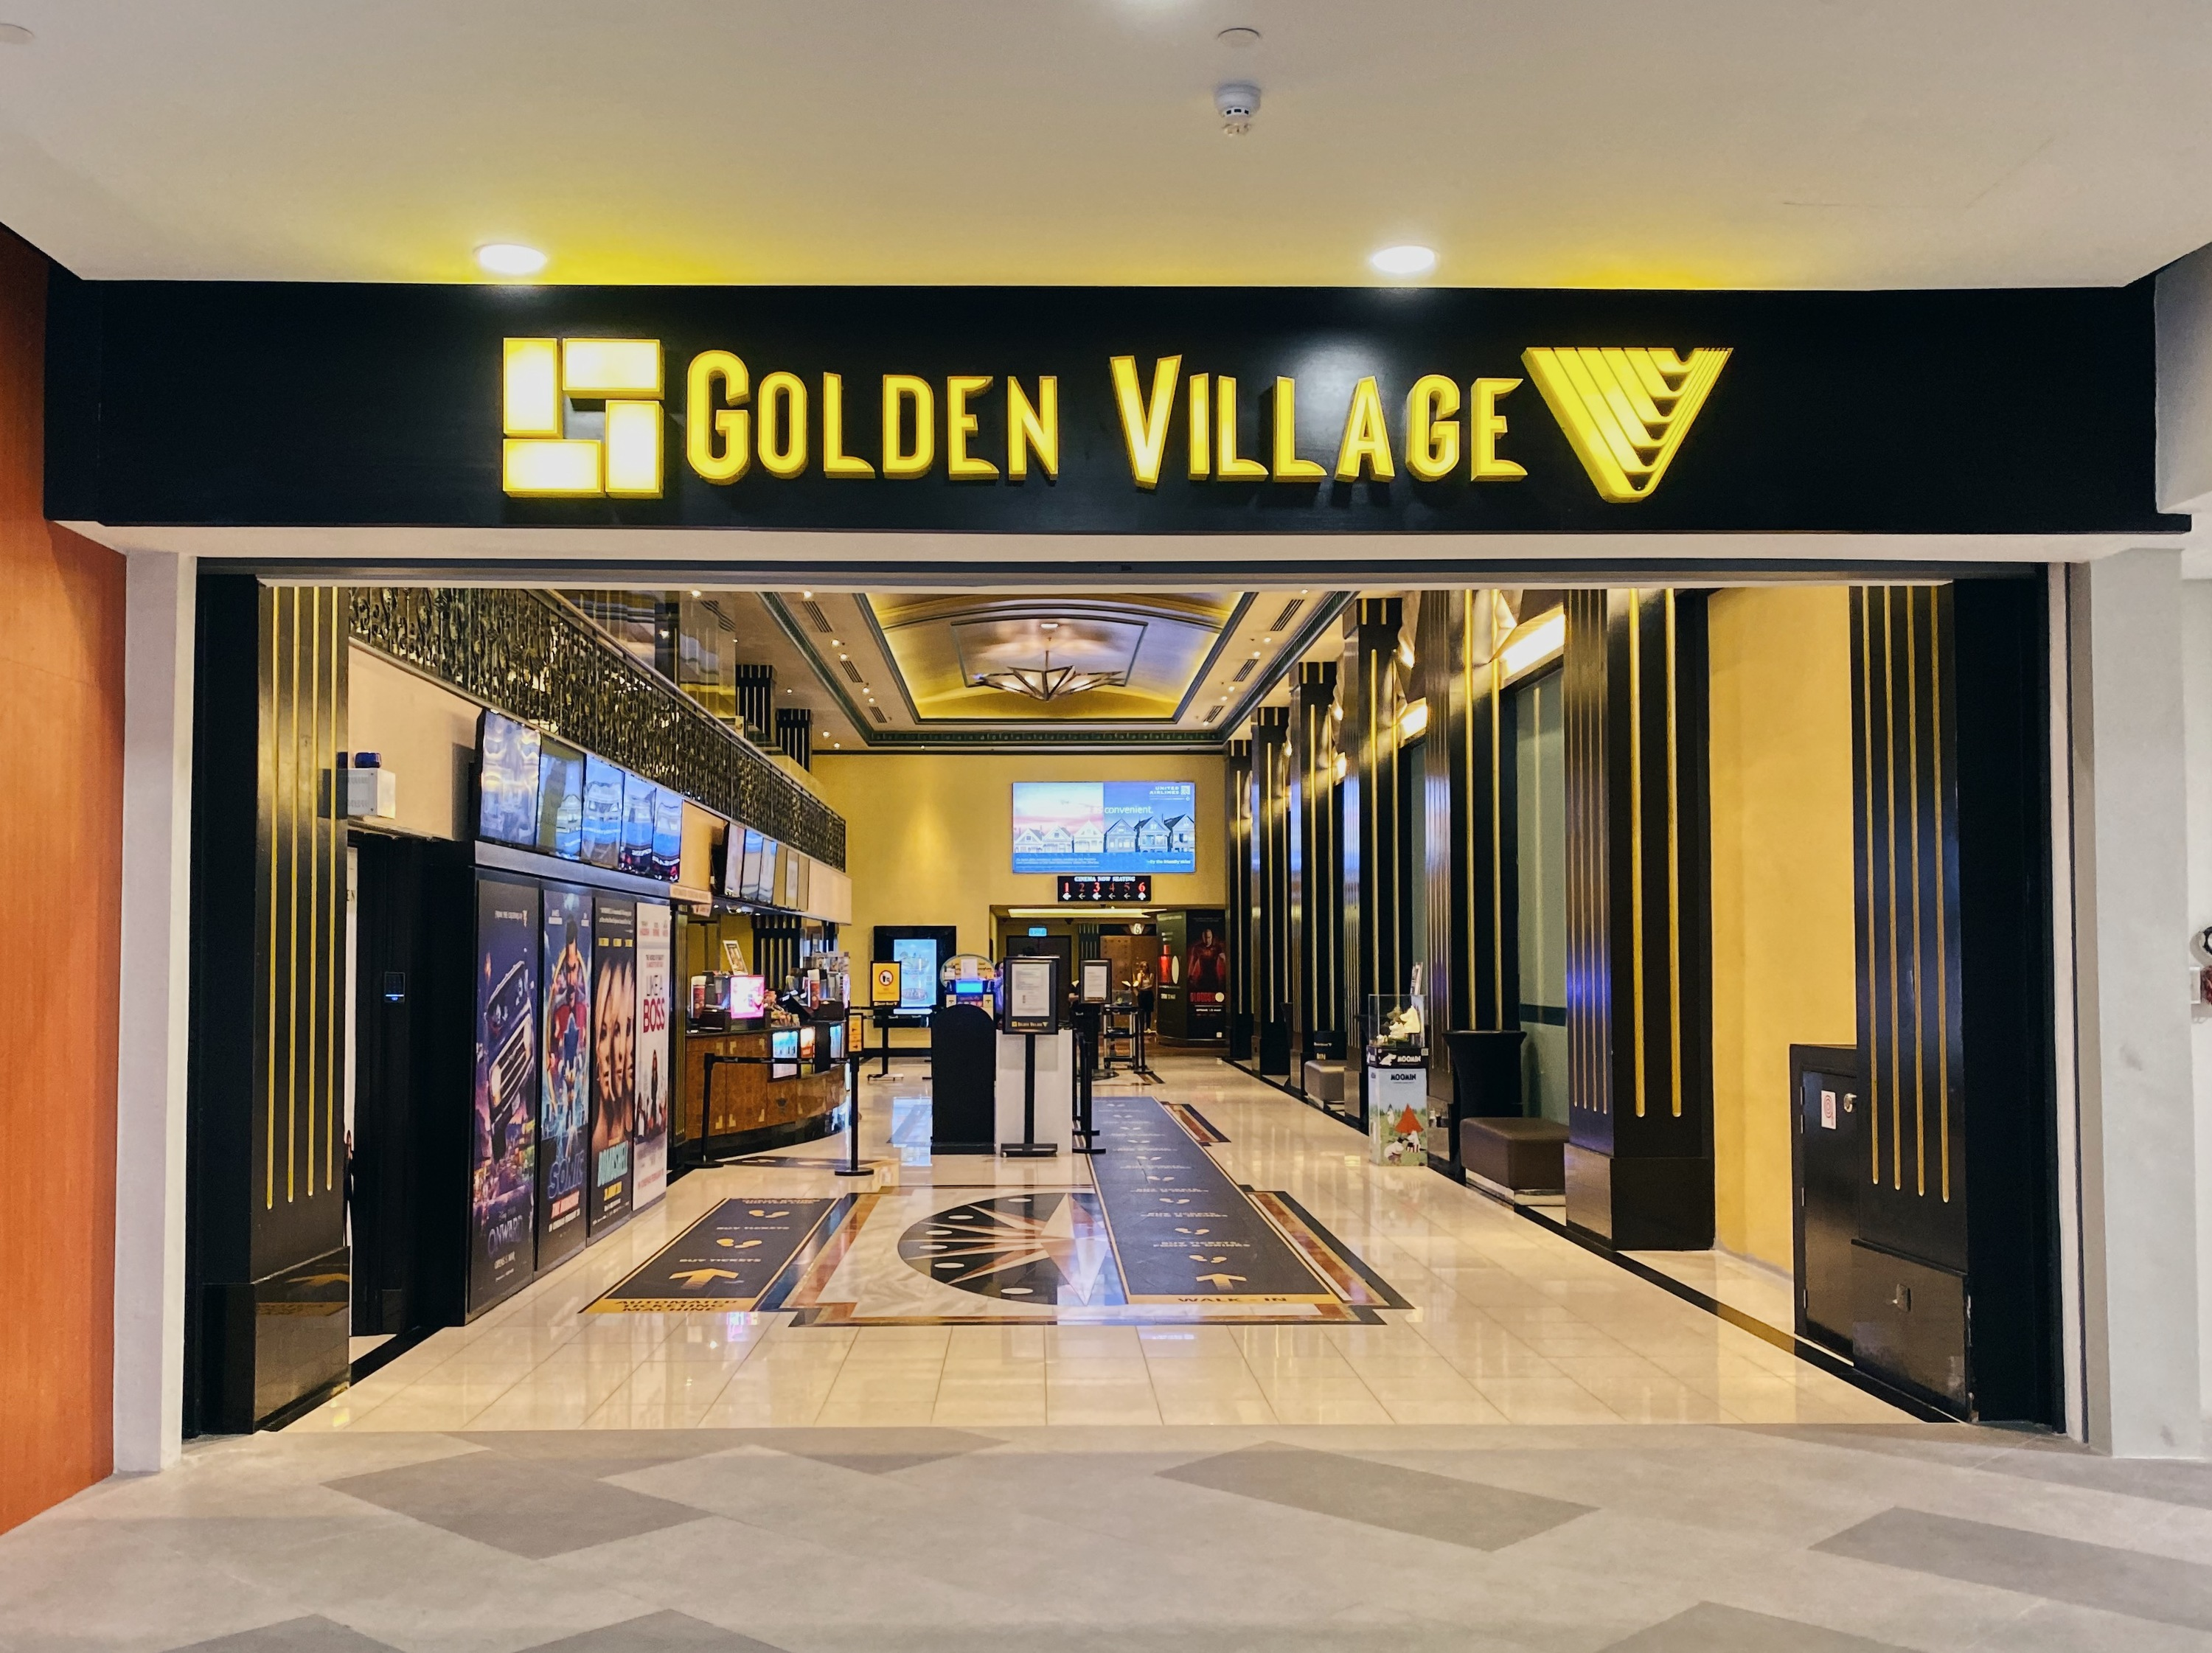 Catch movies at Golden Village from just $5 with this new promotion